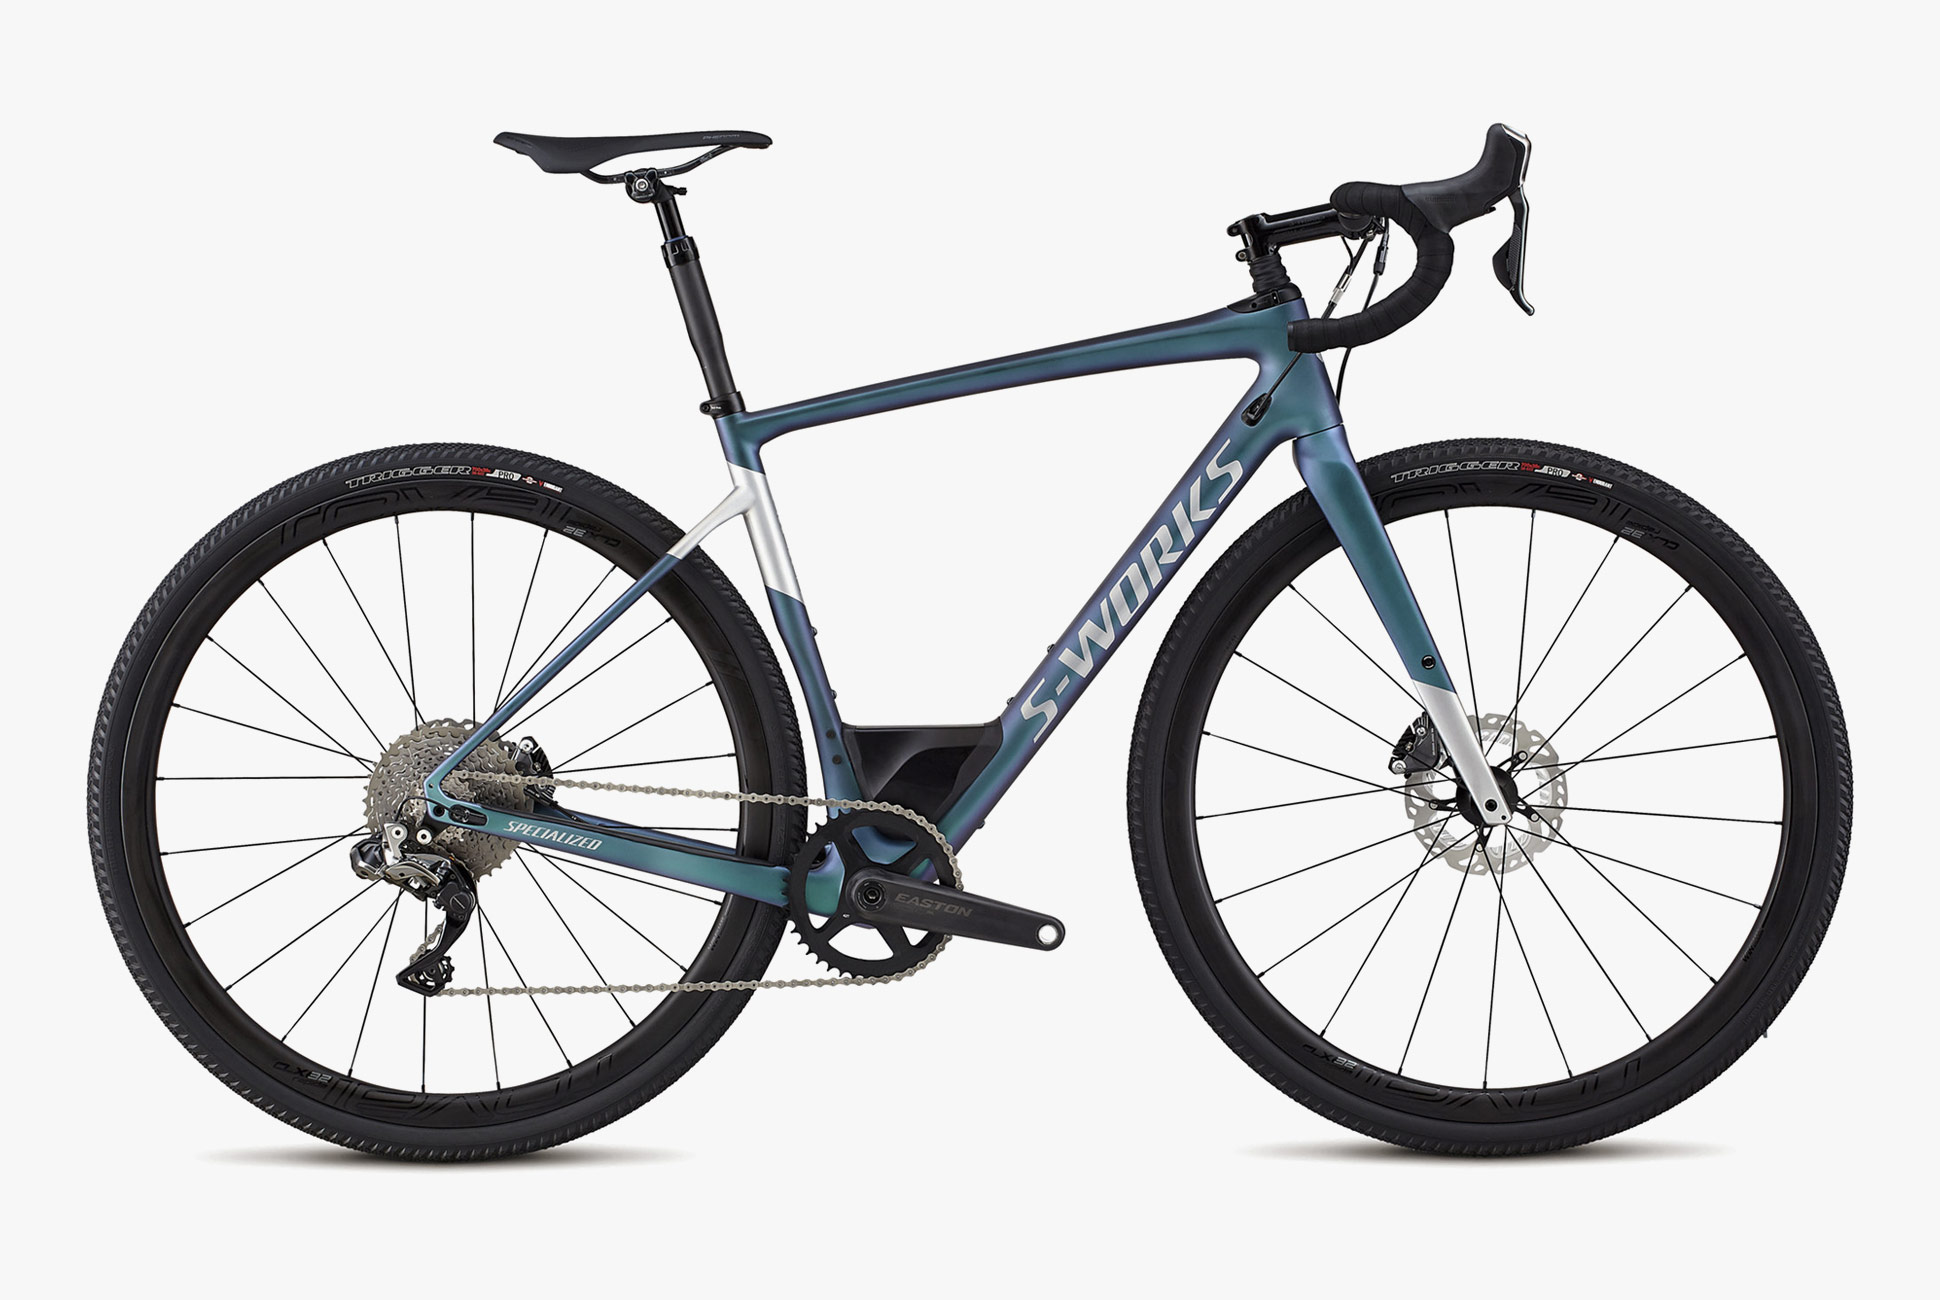 Specialized Adds Suspension to its Diverge Gravel Bike 12